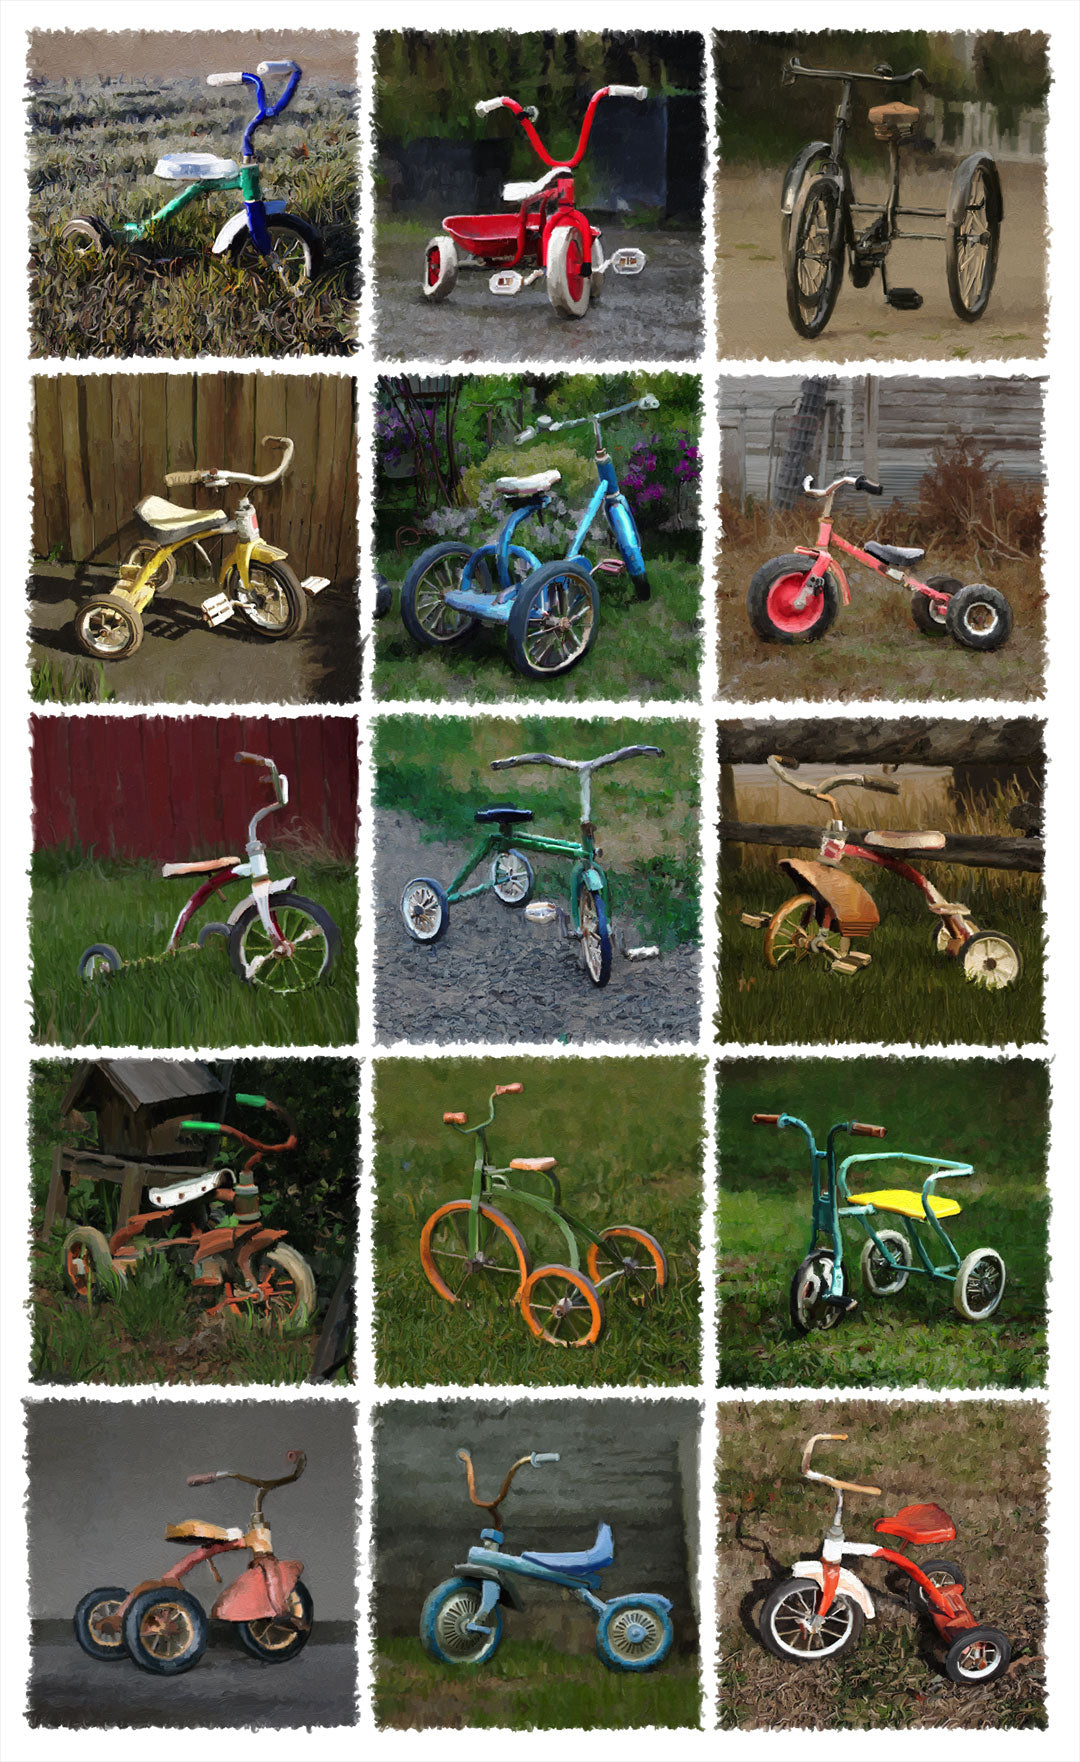 04 - Fifteen Tricycles